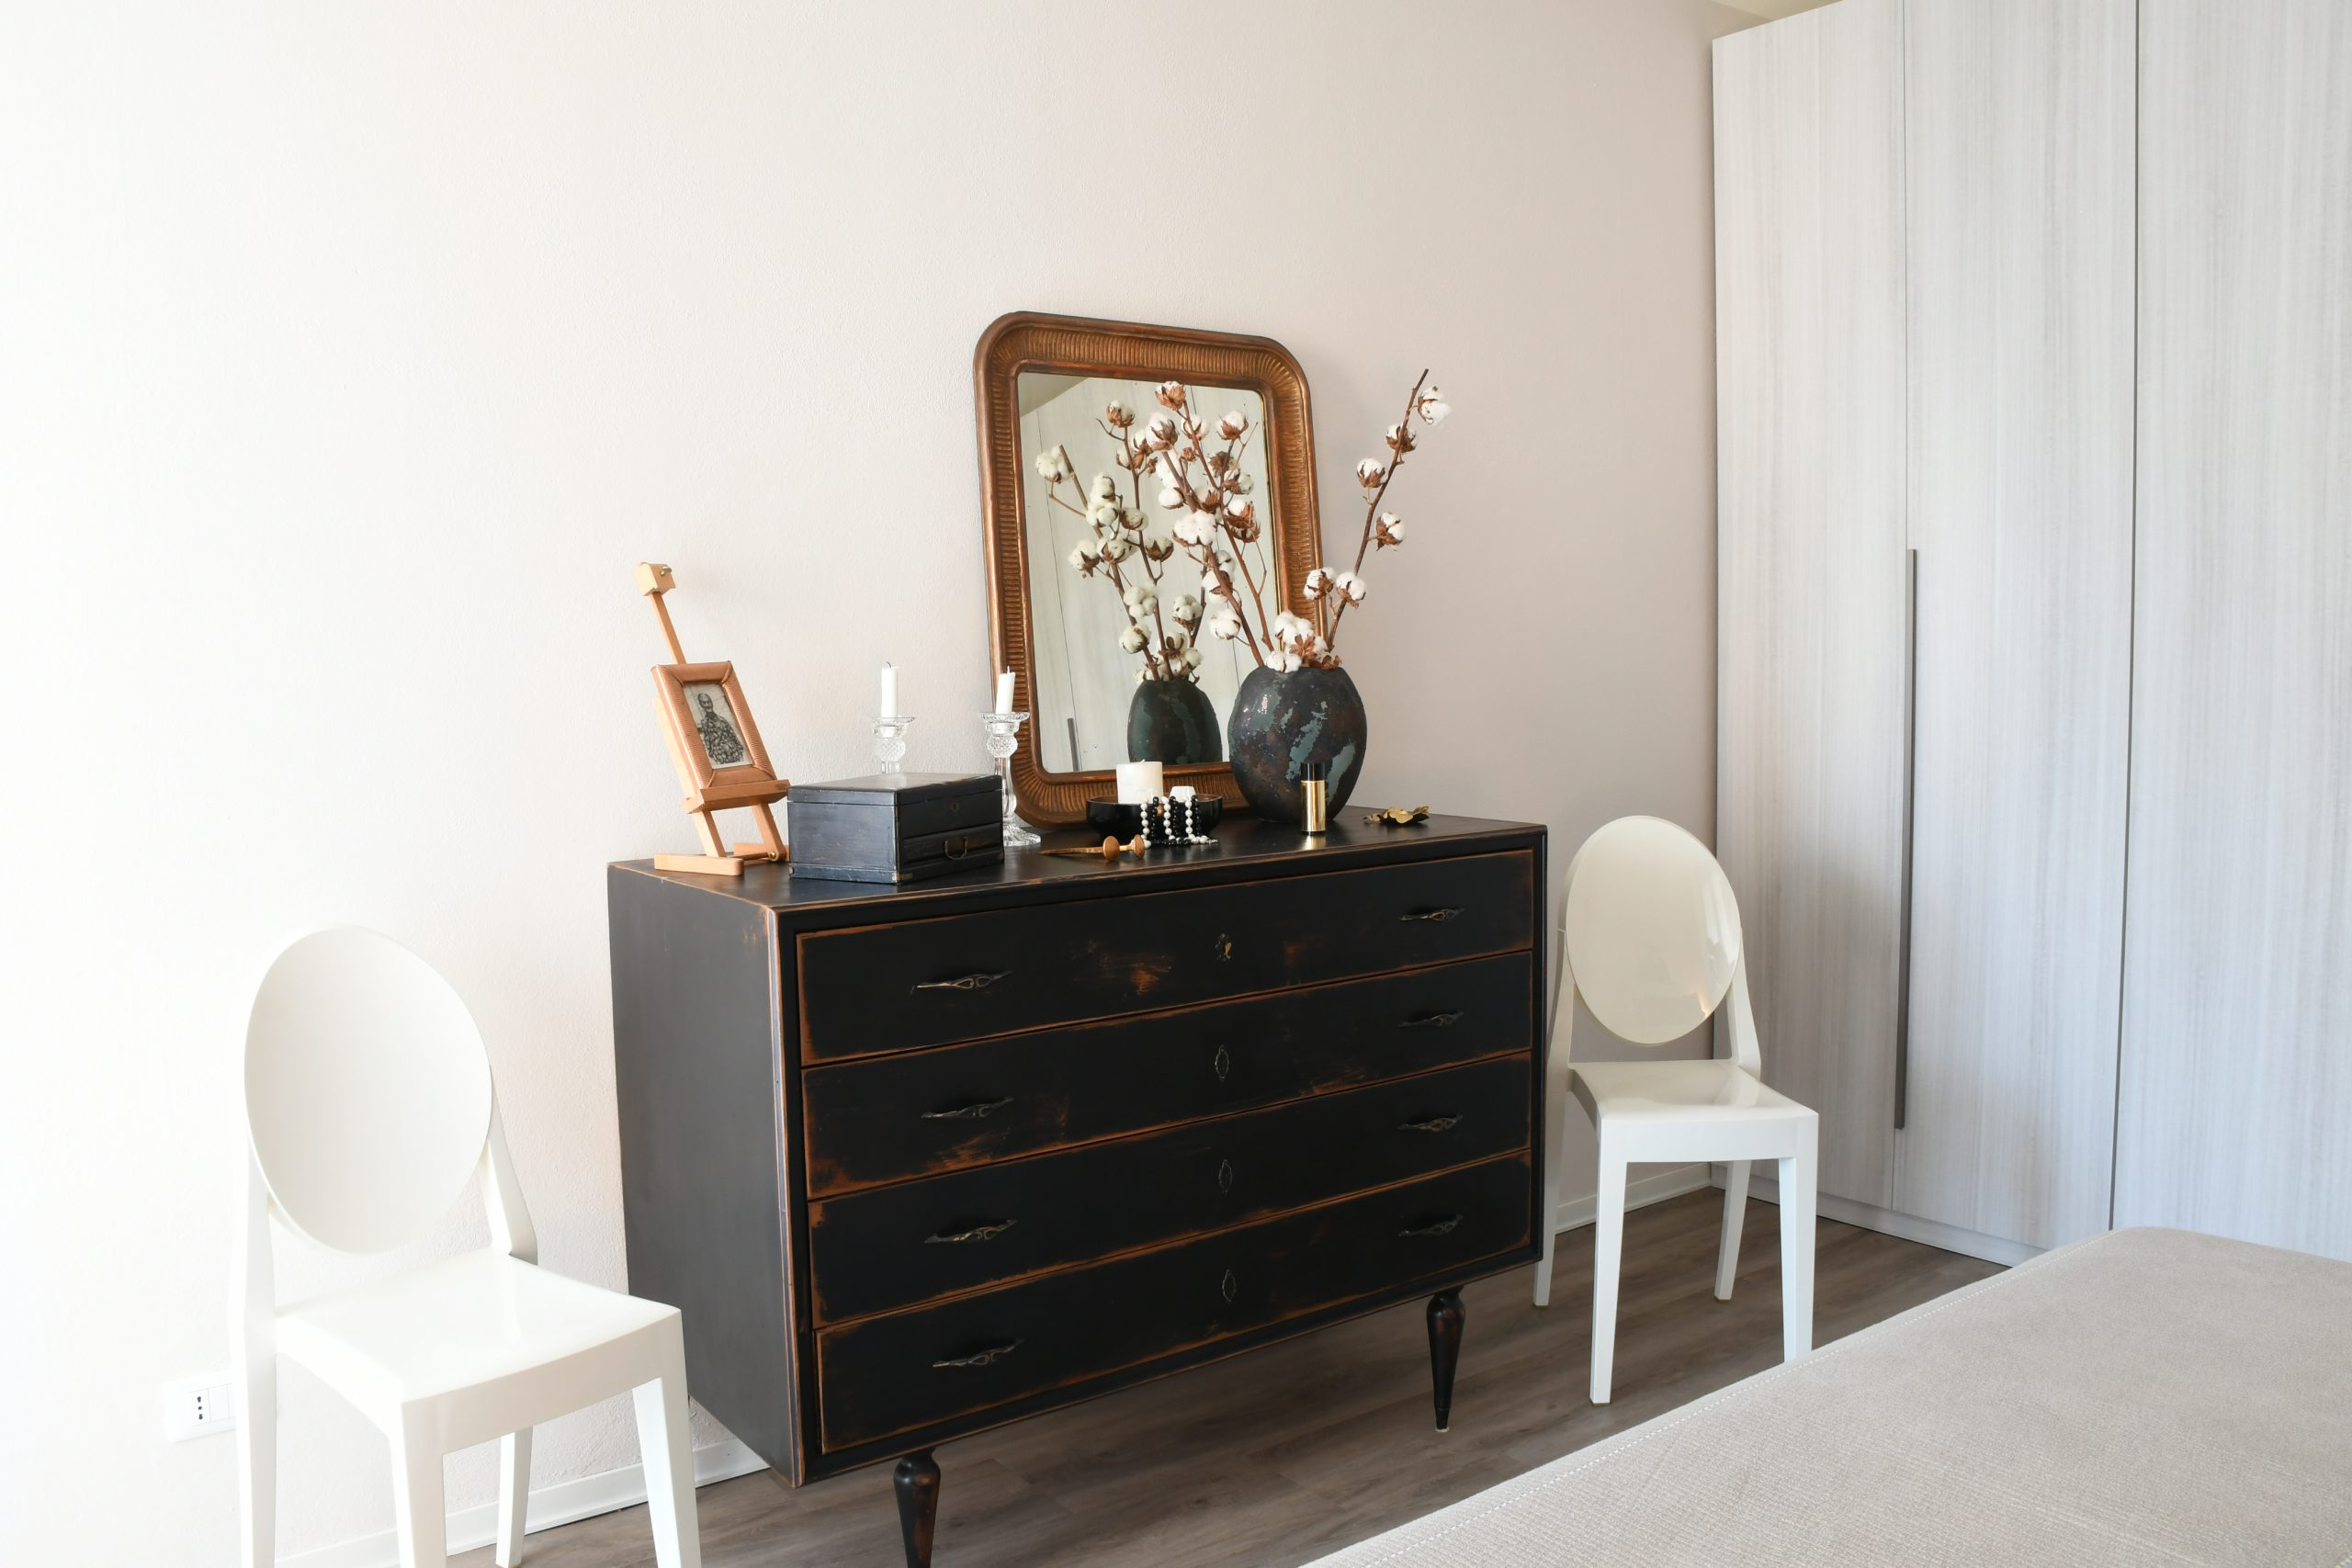 Rossanella's Place in Lake Garda - Bedroom Drawers